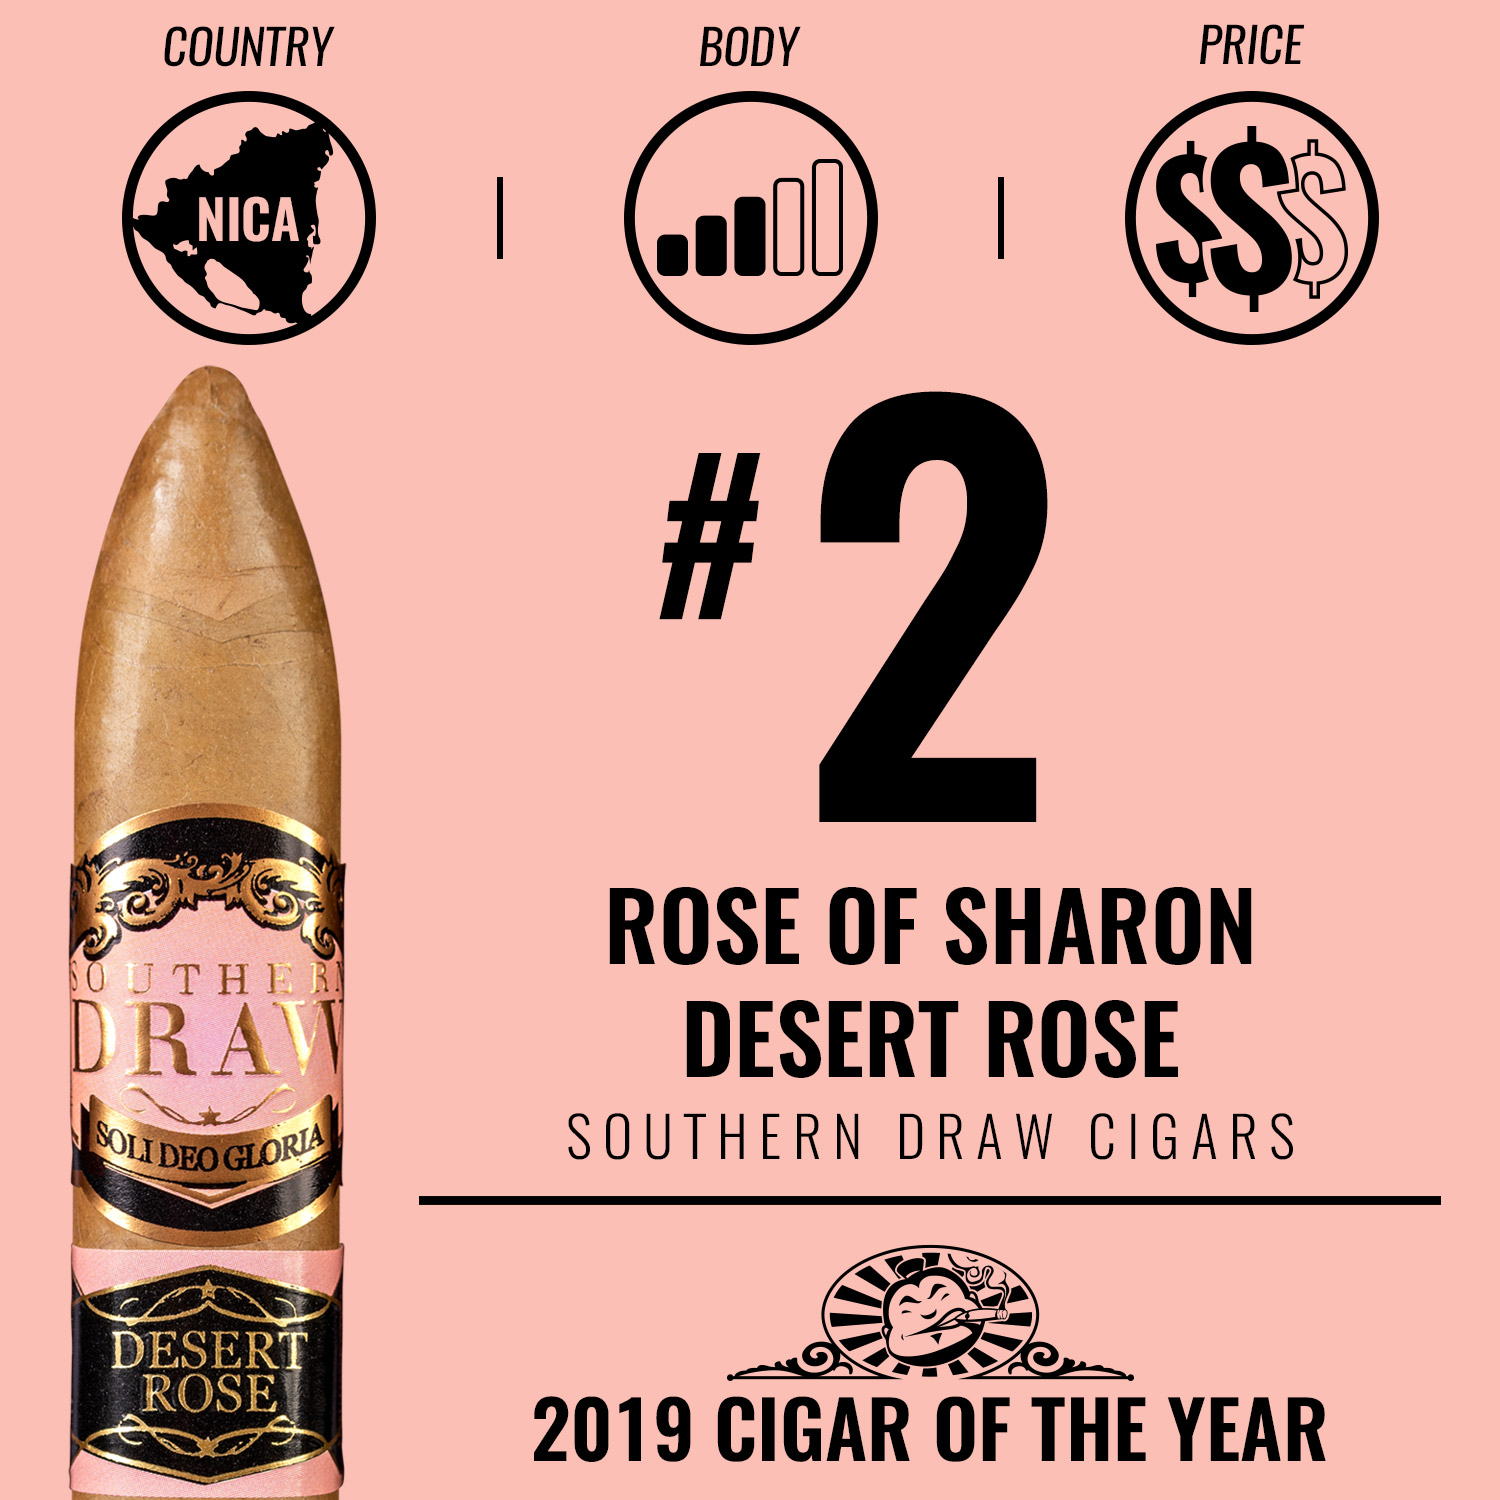 Southern Draw Rose of Sharon Desert Rose No. 2 Cigar of the Year 2019